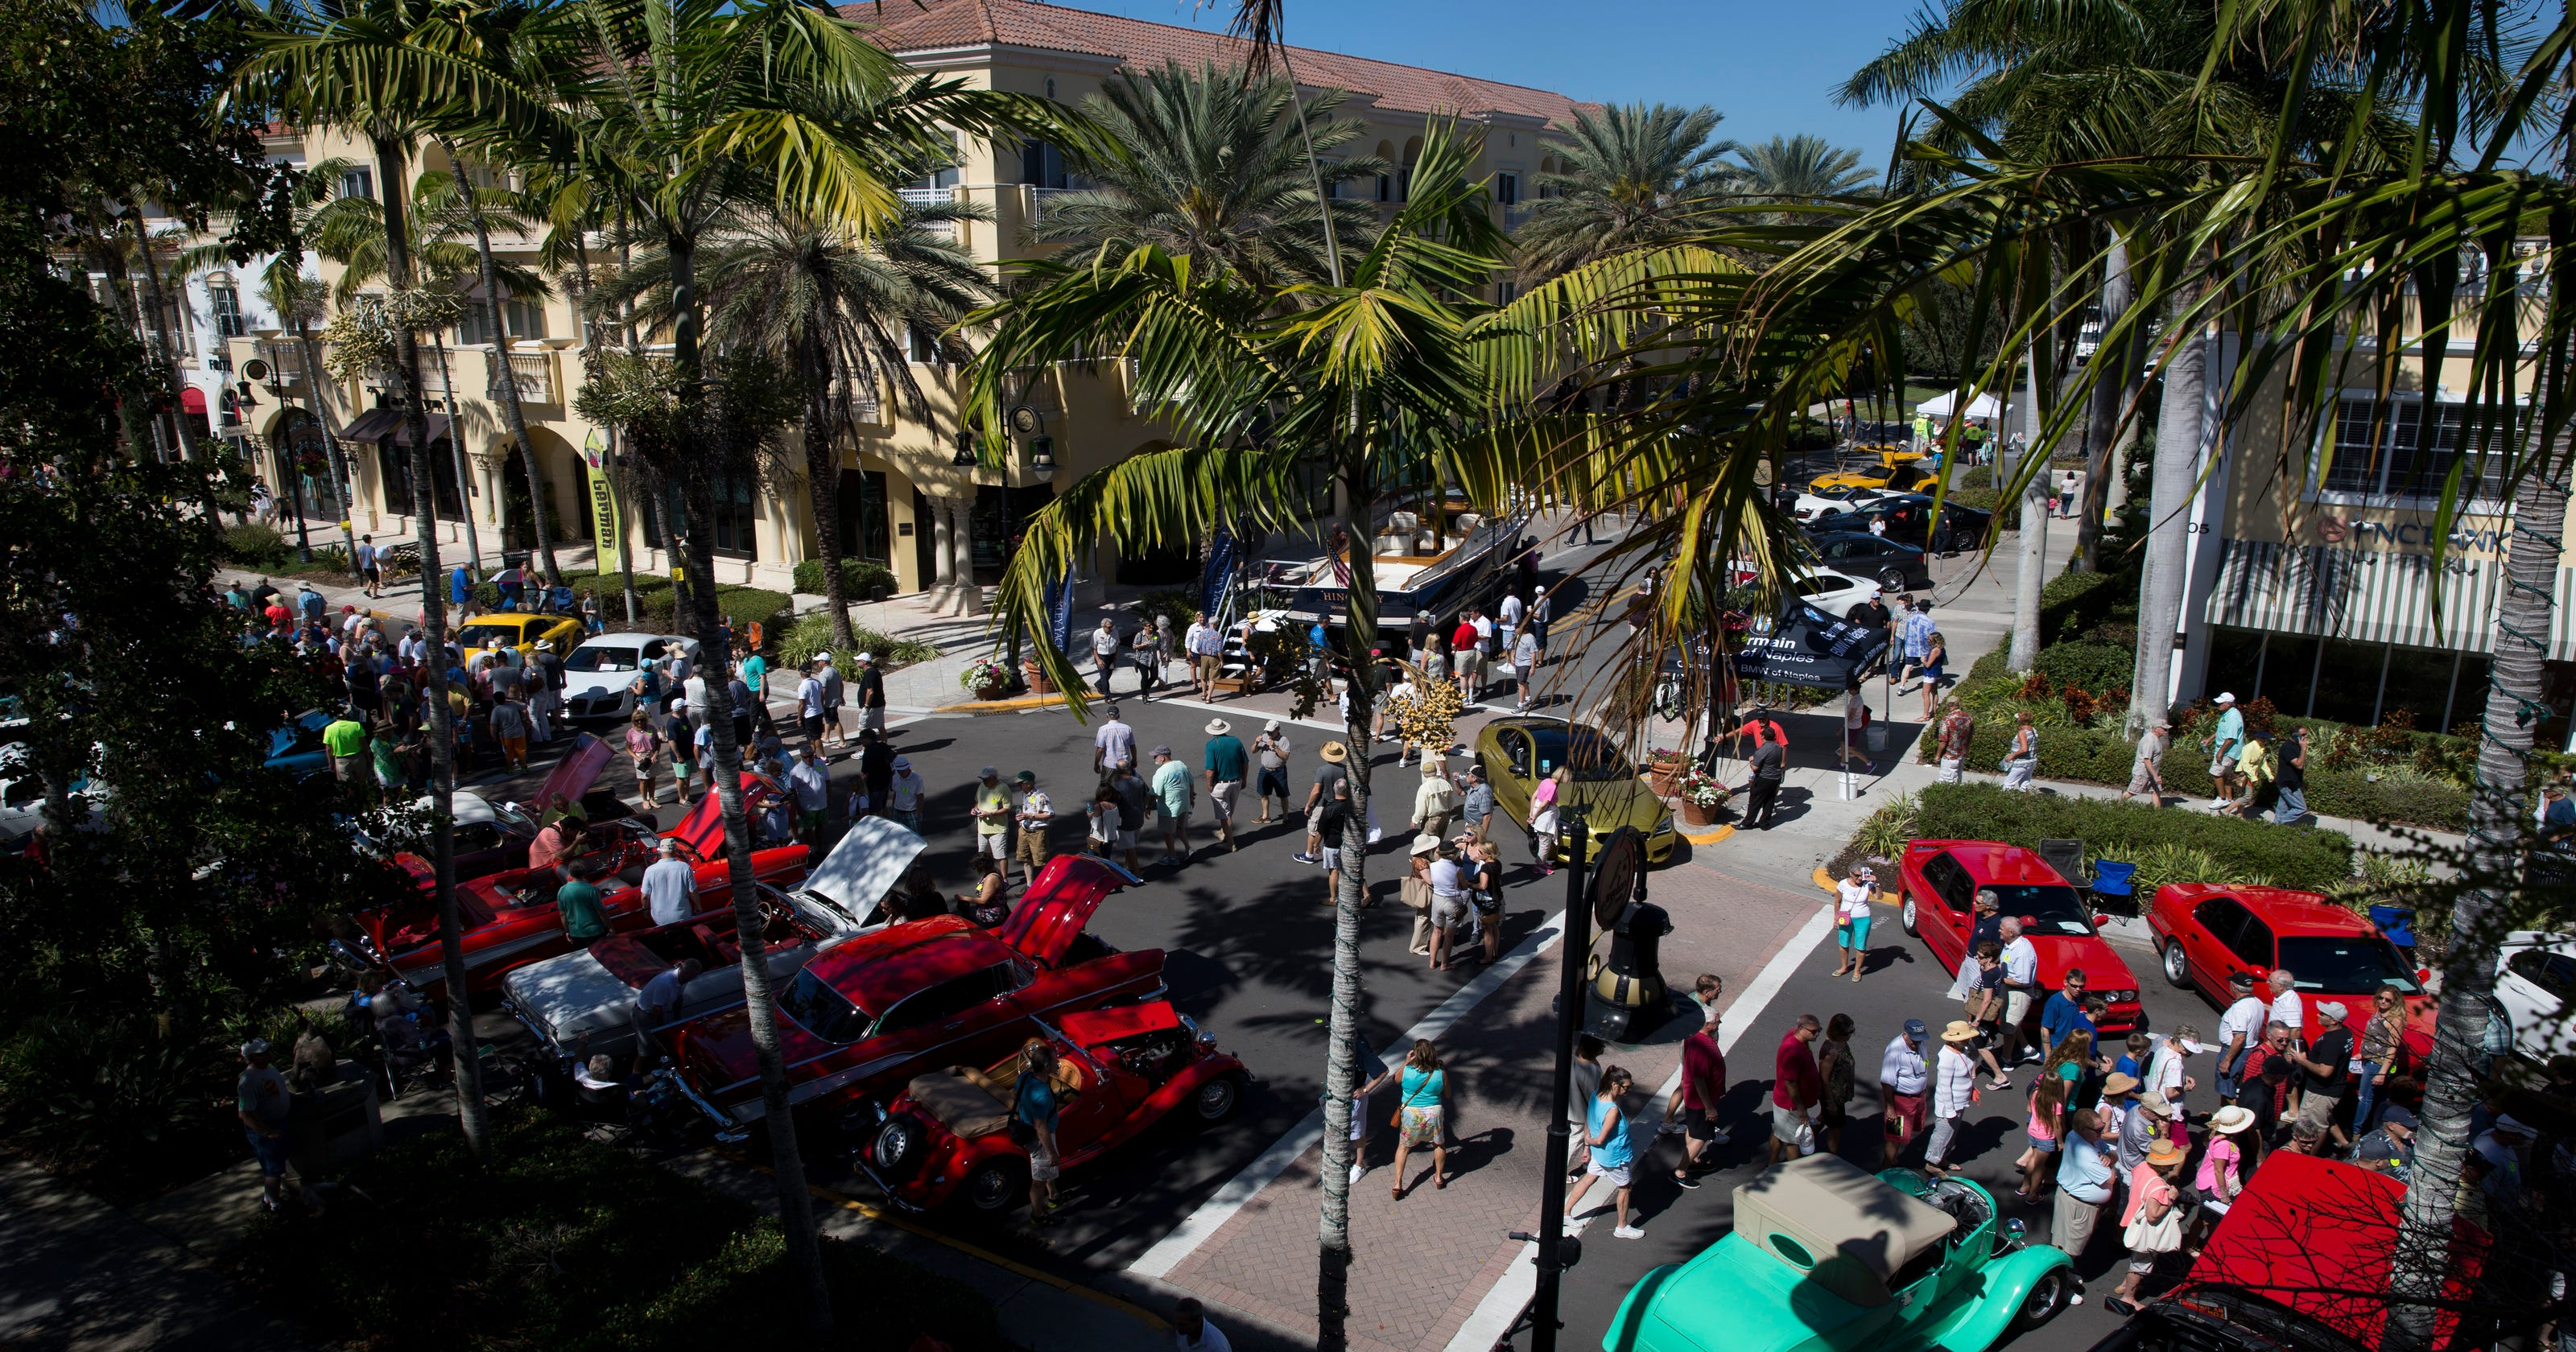 Naples Car Show >> Crowd Comes Out To Admire 400 Classic Cars In Naples